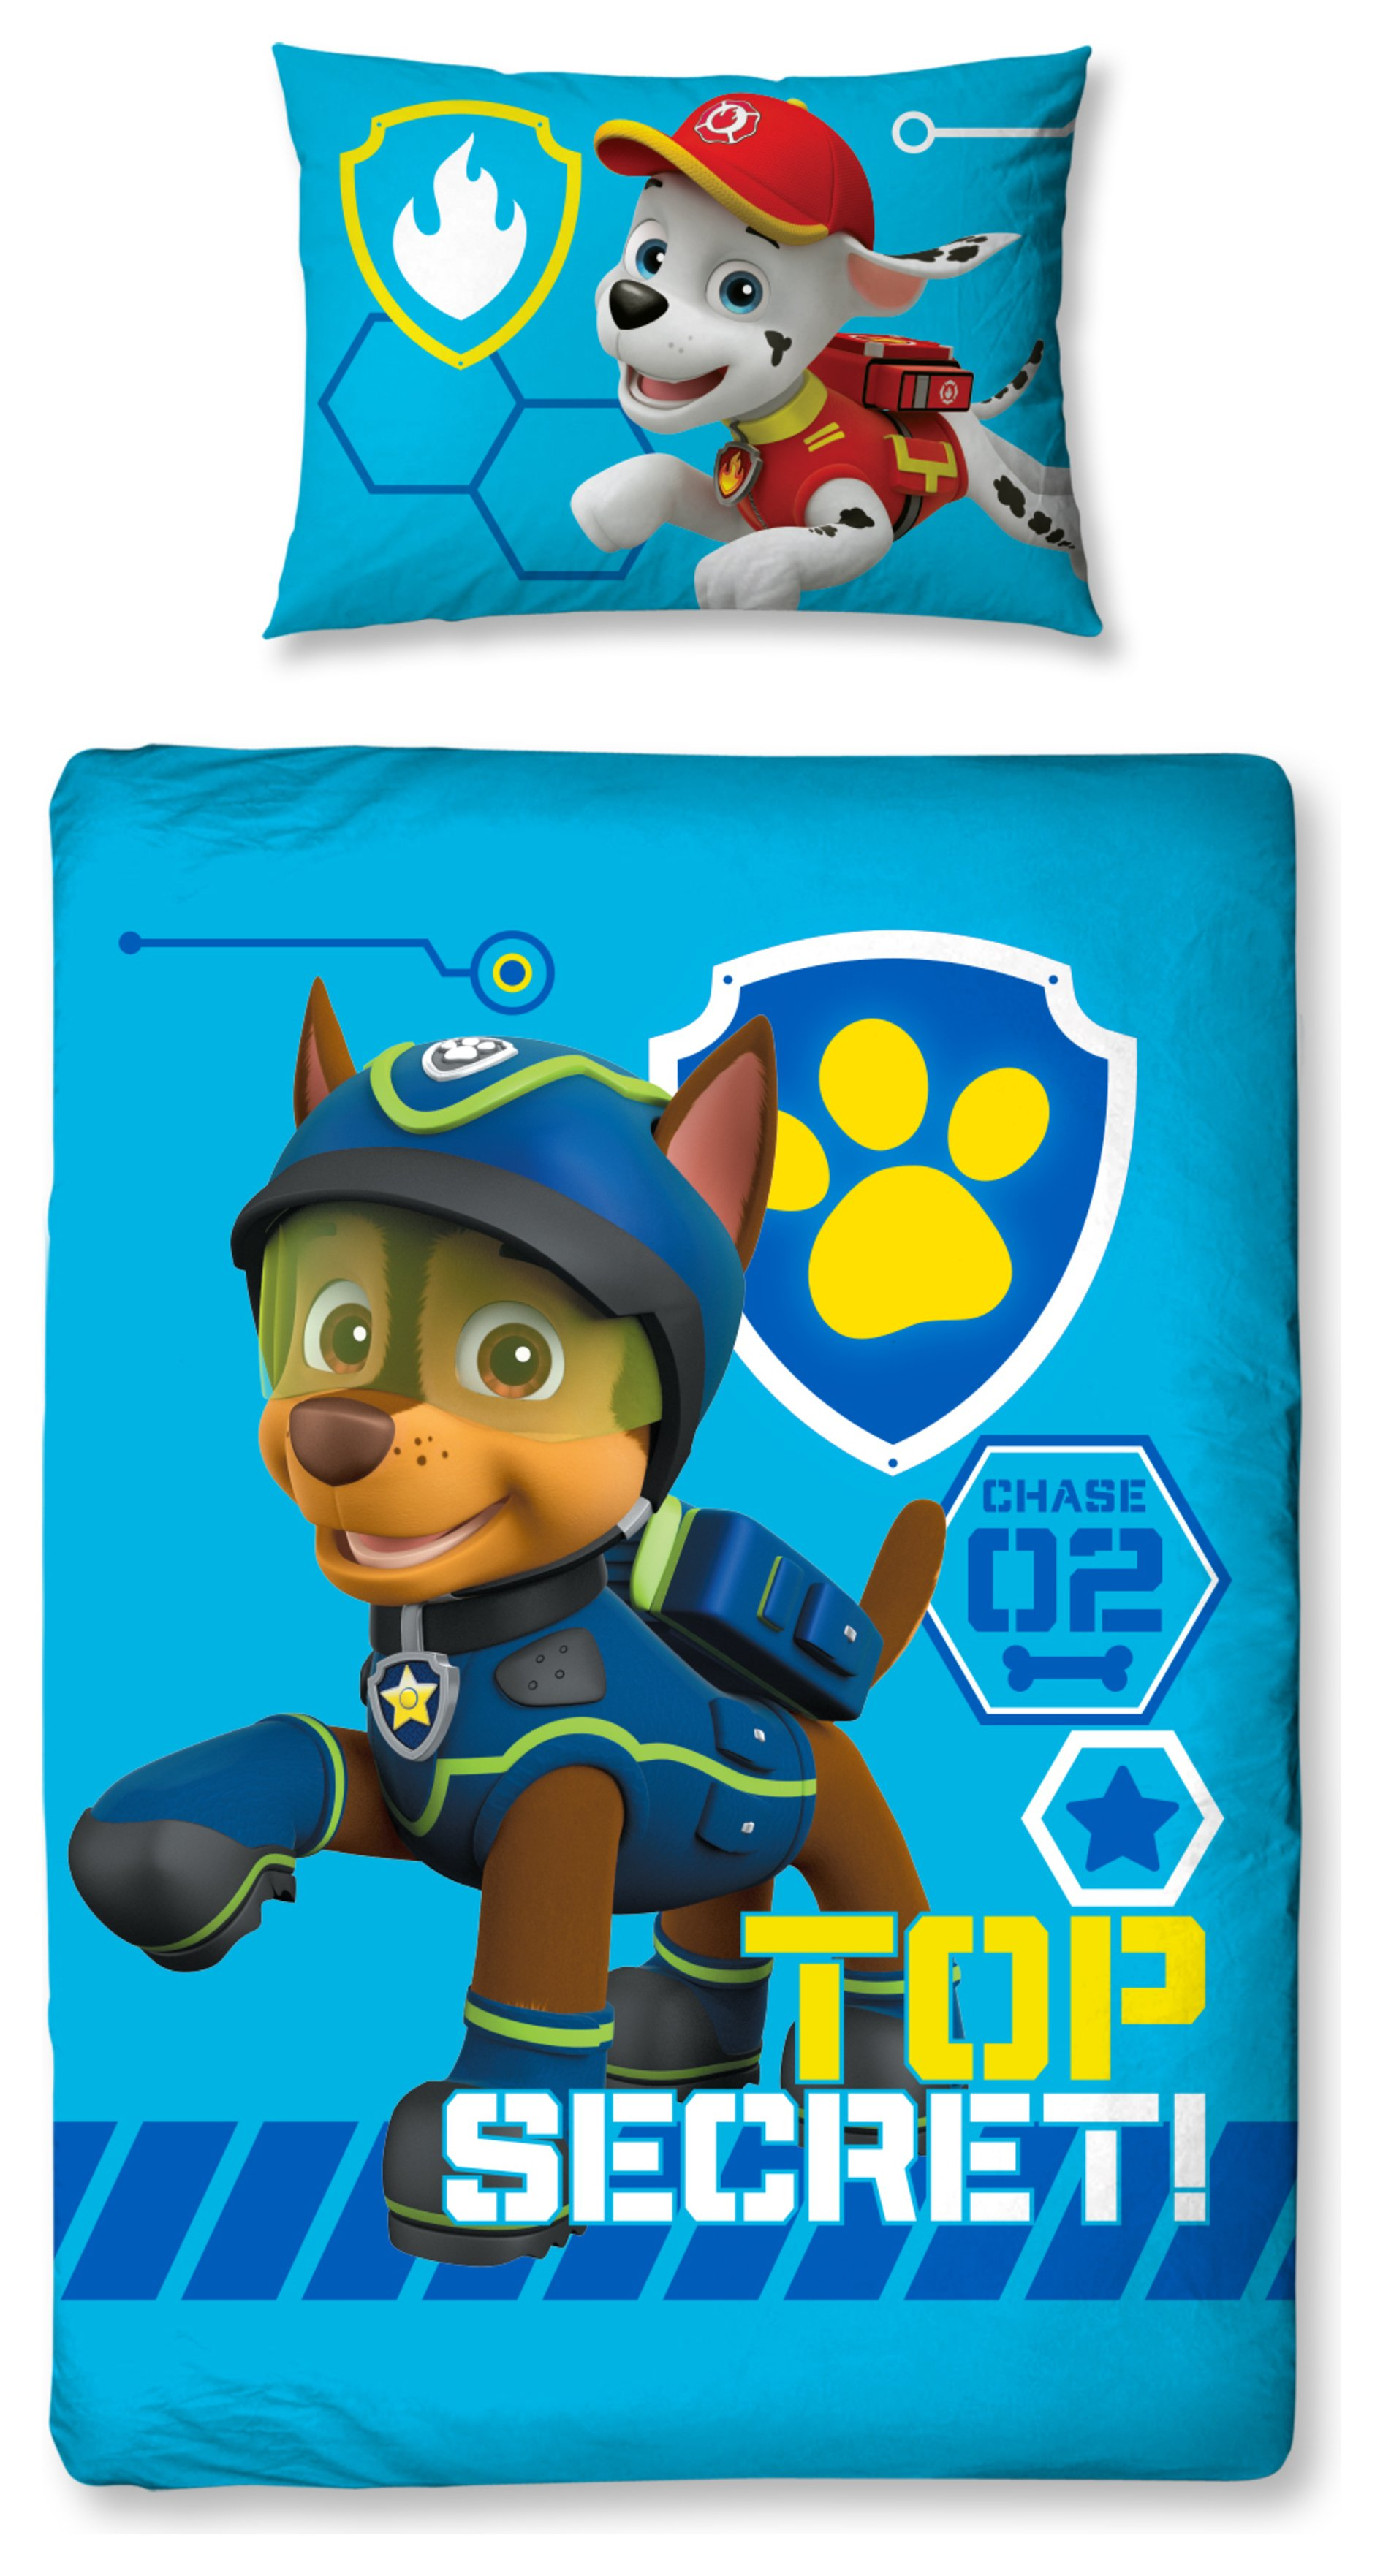 Paw Patrol Spy Bedding Set - Toddler